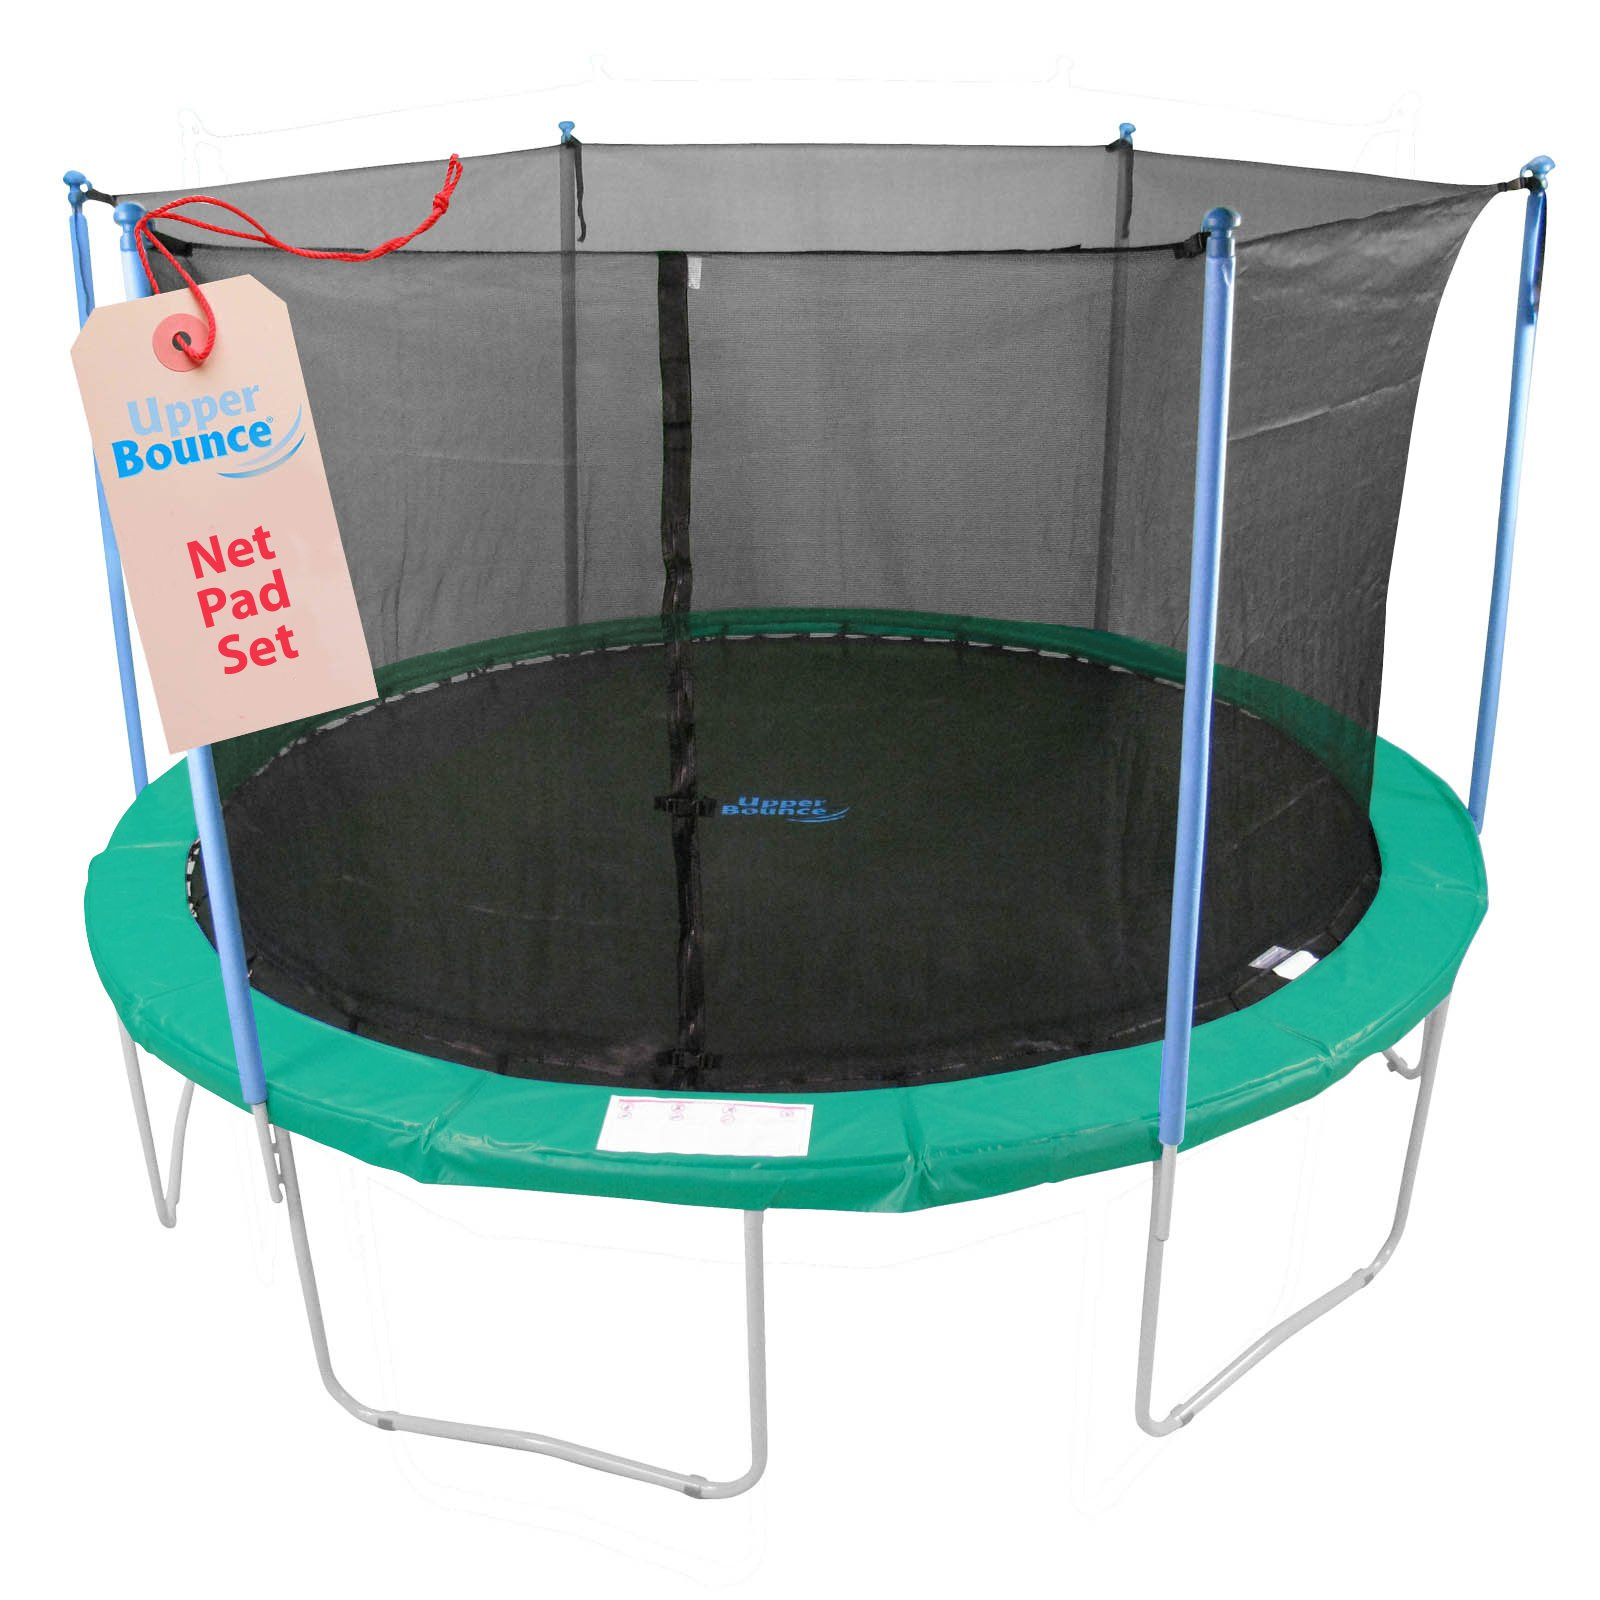 Upper Bounce Super Net & Pad Combo Fits for 14' Round Frames Using 4 Poles or 2 Arches by Upper Bounce (Image #3)